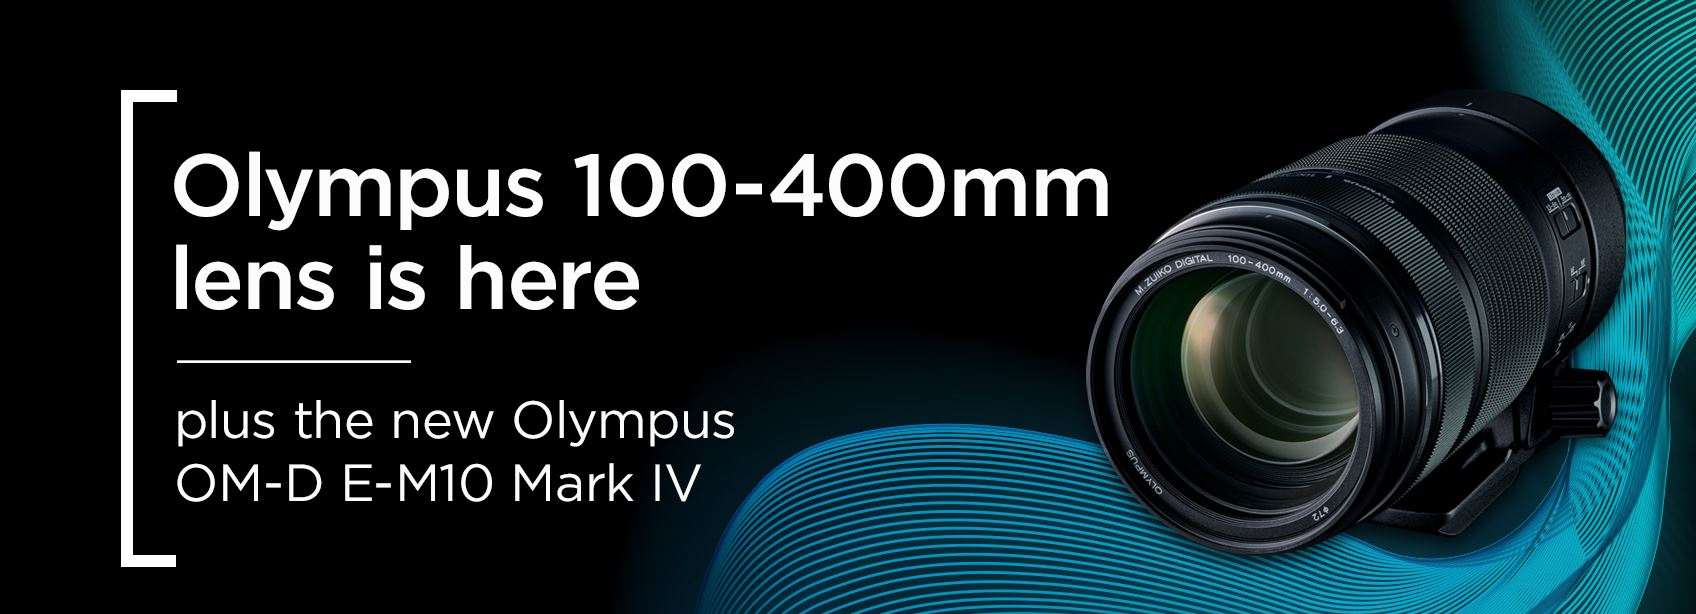 Olympus 100-400mm lens is here plus the new Olympus OM-D E-M10 Mark IV